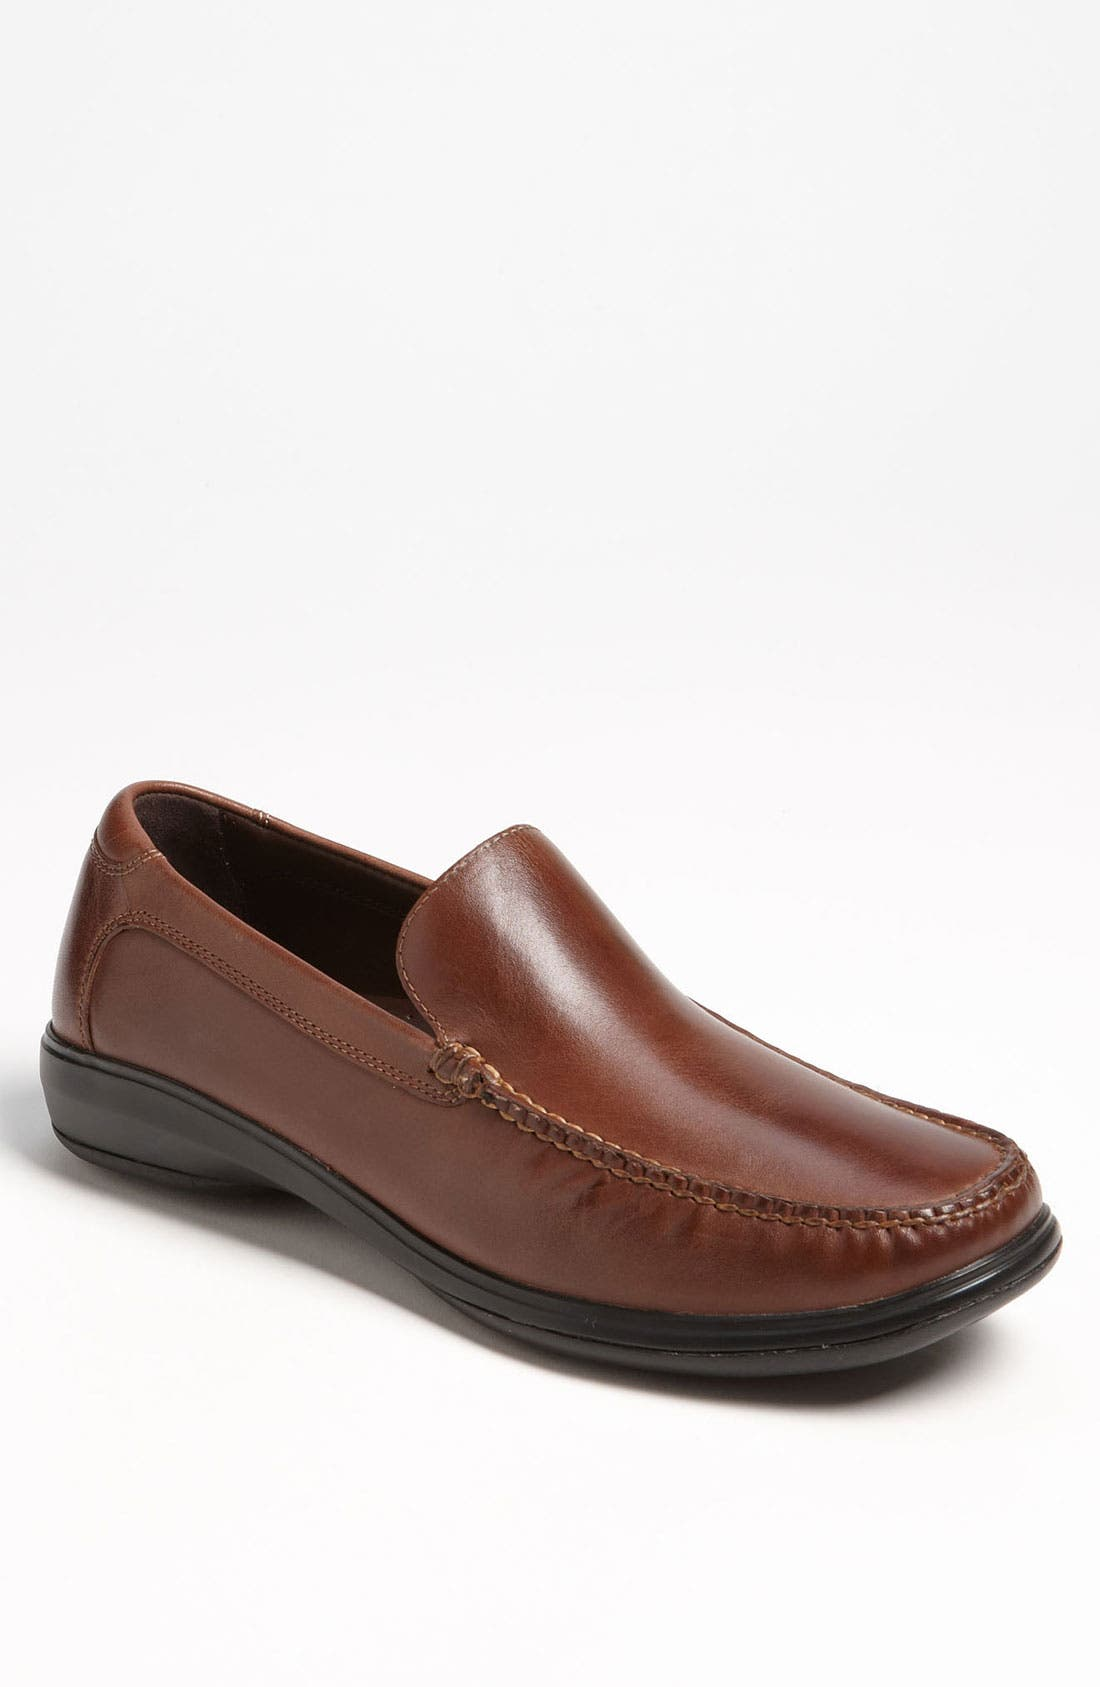 Main Image - COLE HAAN AIR KEATING VENETIAN